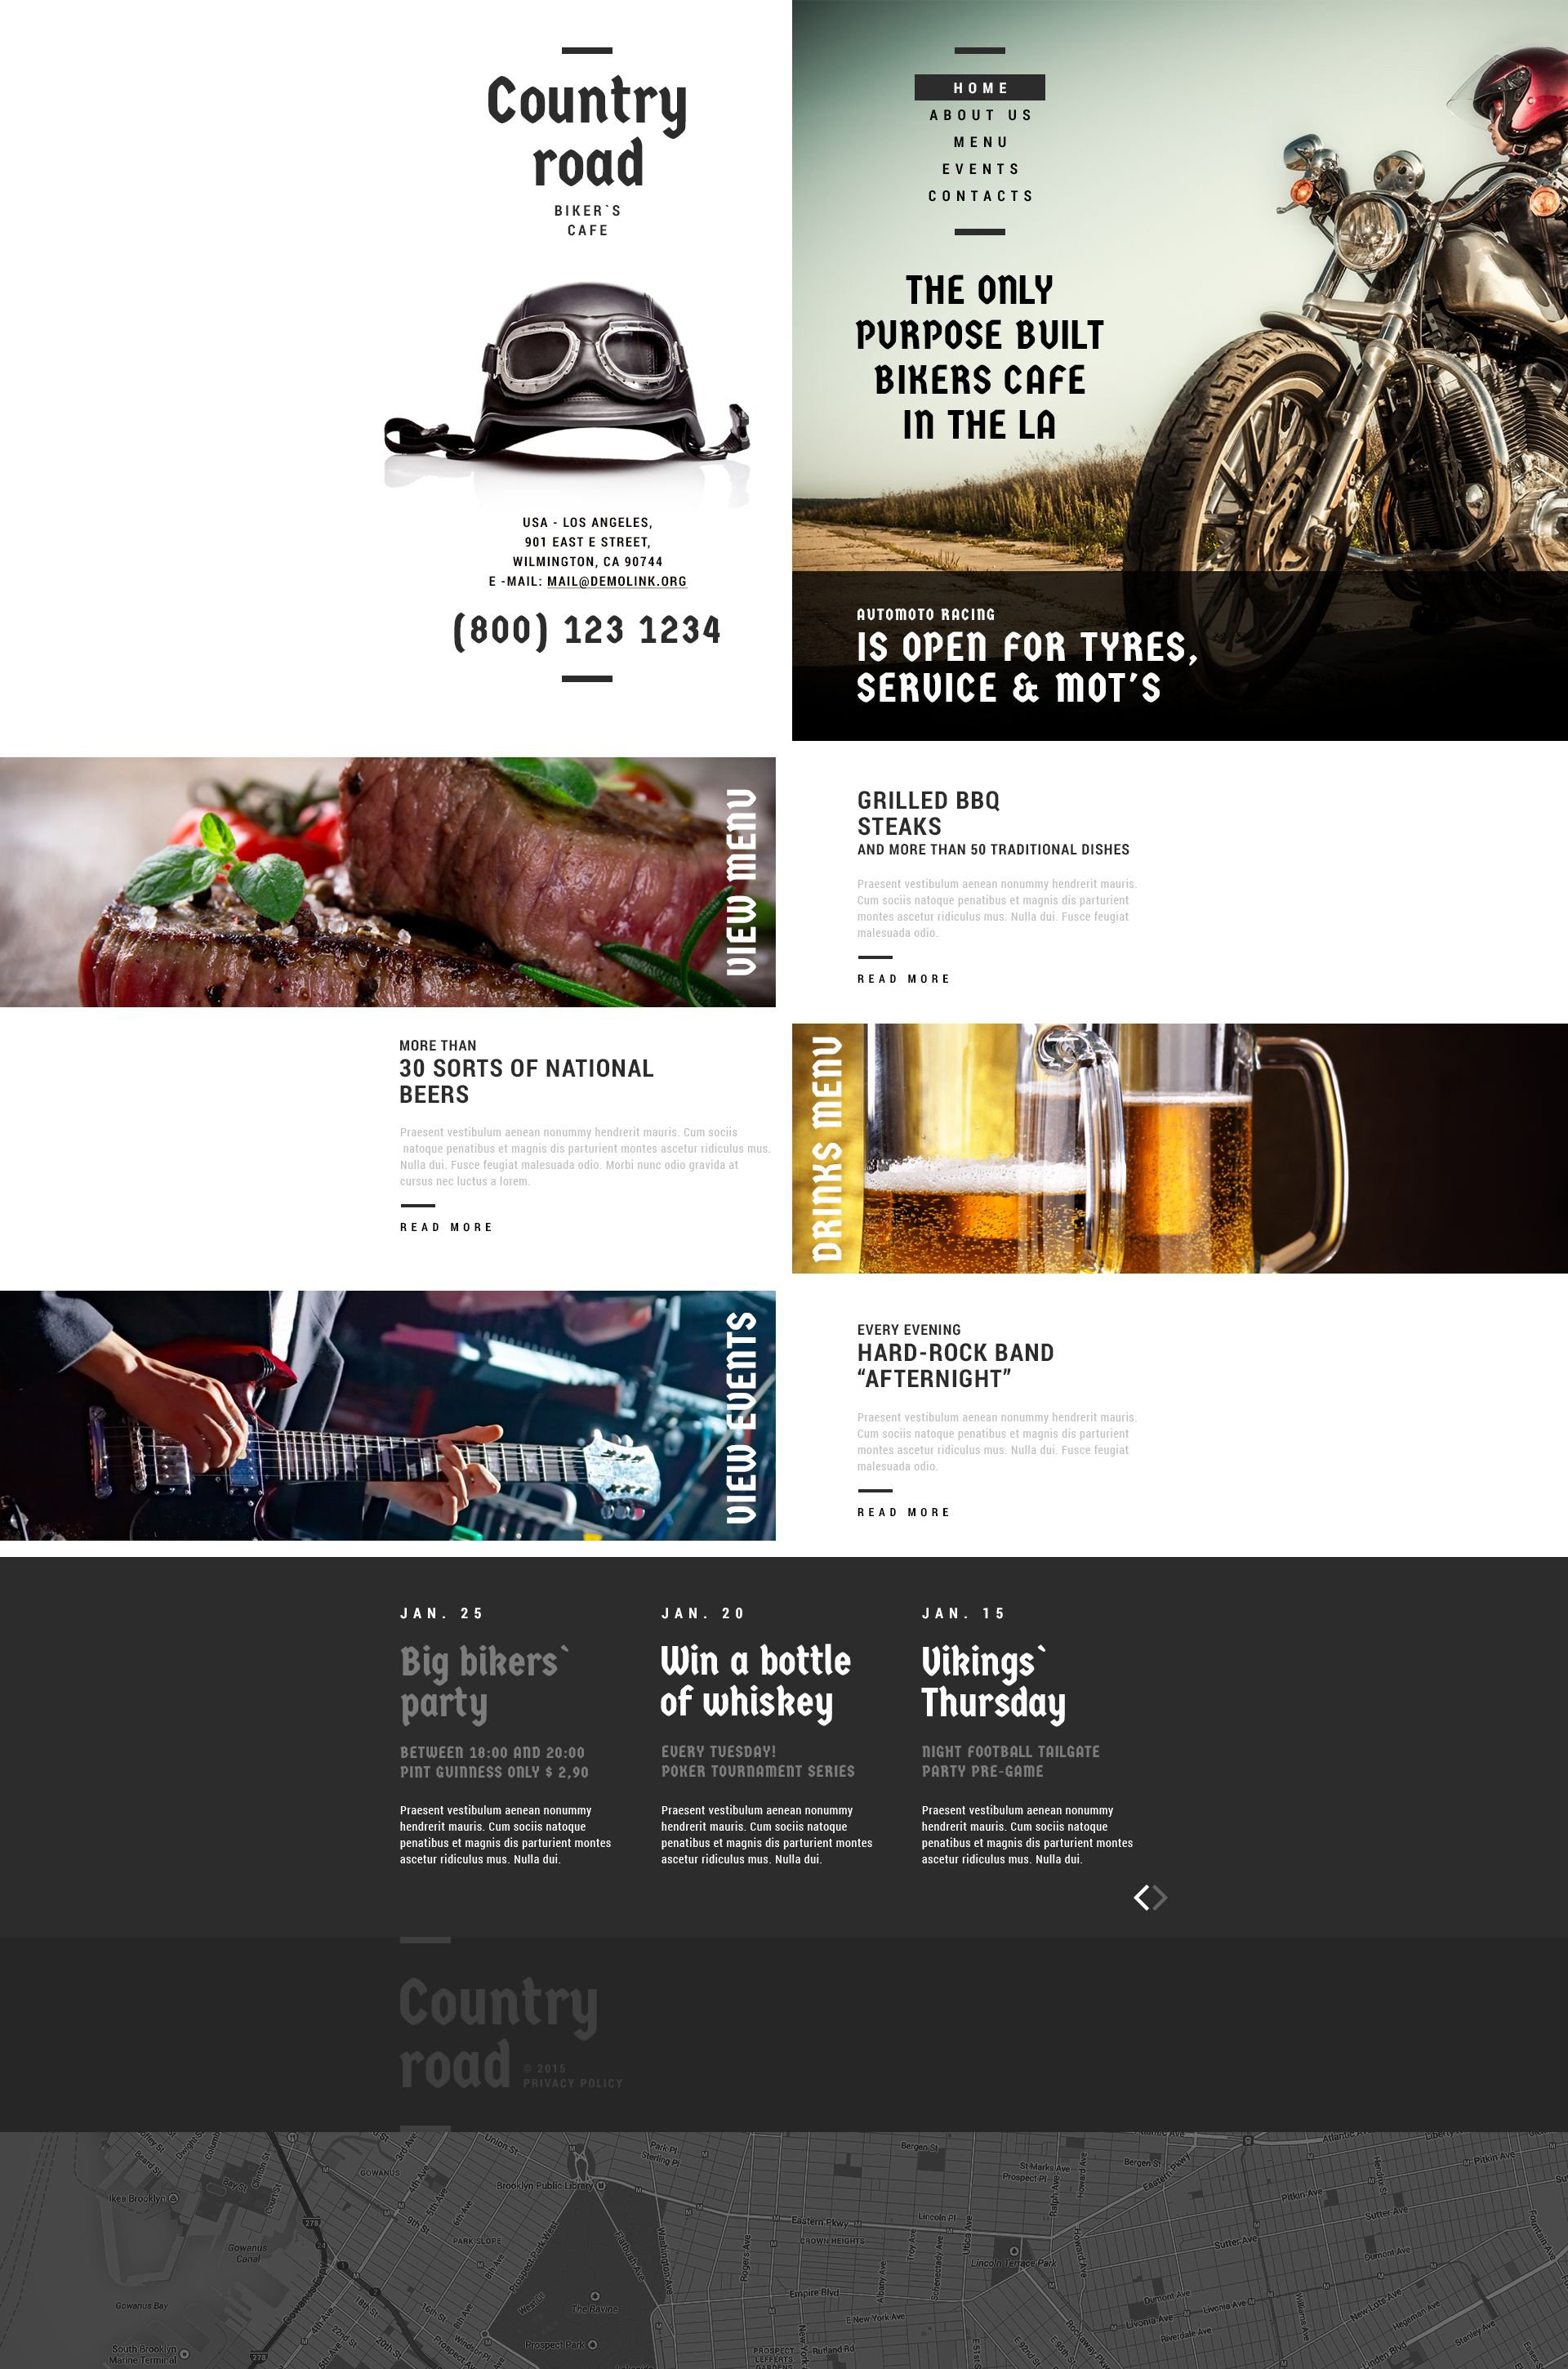 The Country Road Responsive Javascript Animated Design 53704, one of the best website templates of its kind (cafe and restaurant, most popular), also known as country road website template, biker website template, cafe restaurant website template, meat website template, beef website template, pork website template, chicken website template, roast website template, barbecue website template, grill website template, meal website template, snack website template, food website template, brisket website template, shoulder website template, steak and related with country road, biker, cafe restaurant, meat, beef, pork, chicken, roast, barbecue, grill, meal, snack, food, brisket, shoulder, steak, etc.